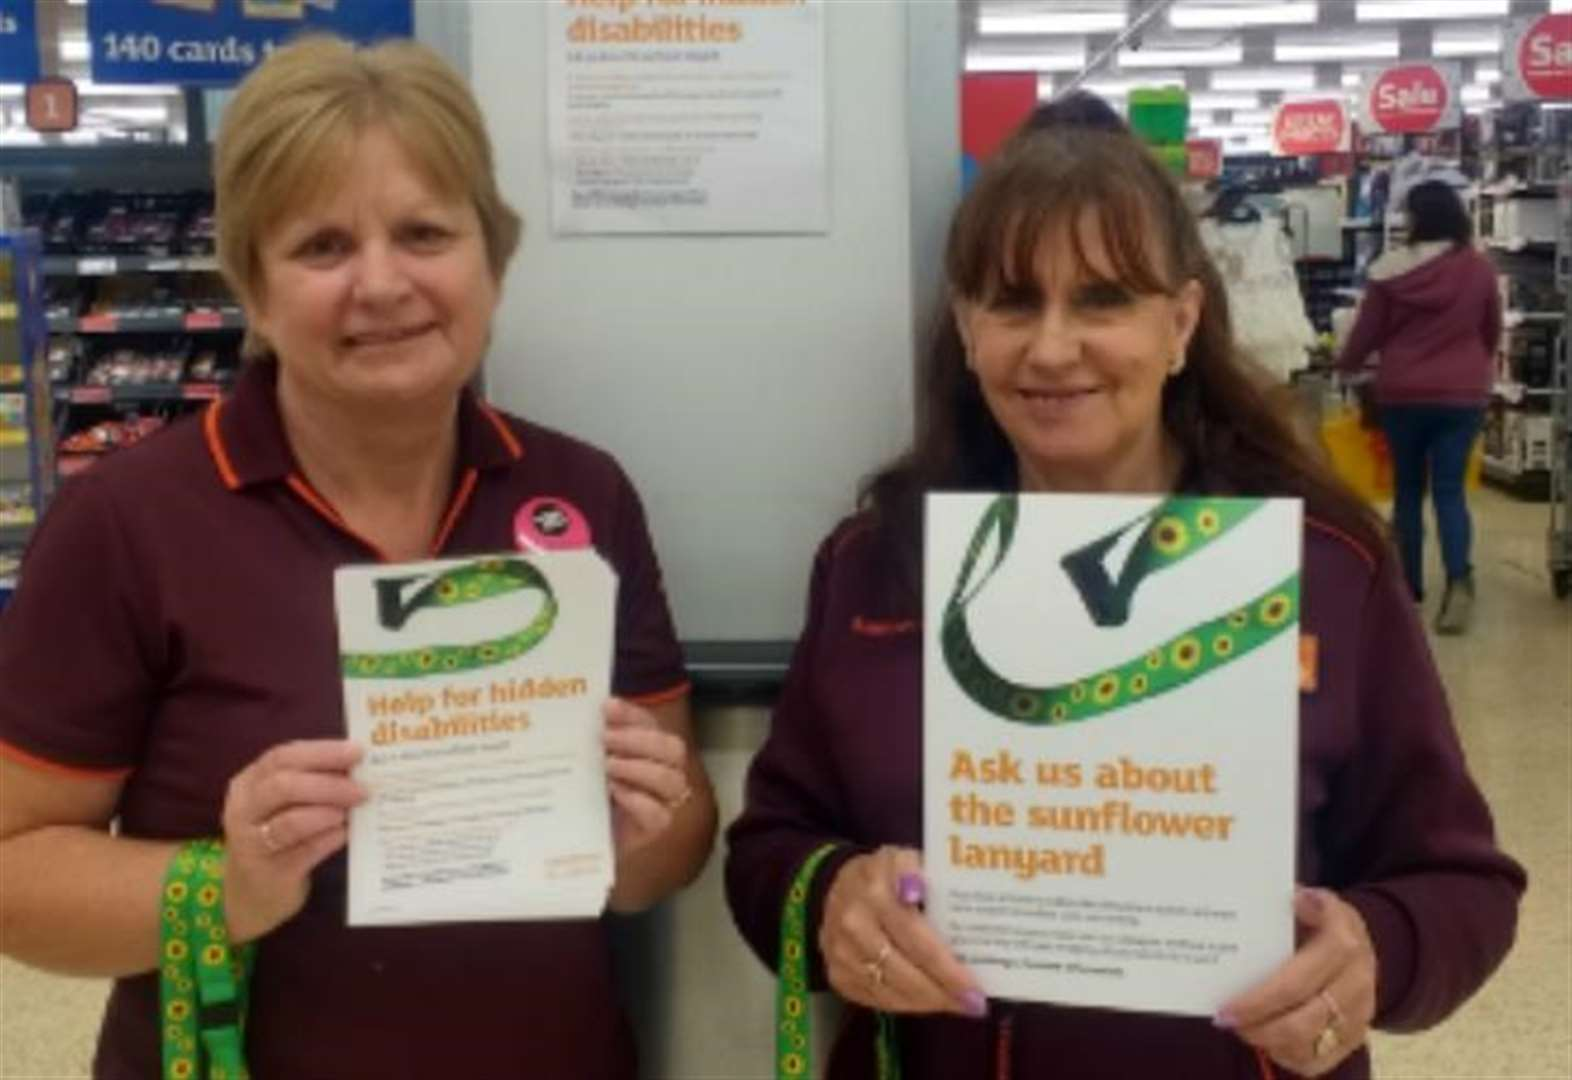 Helping hand for disabled customers from supermarket